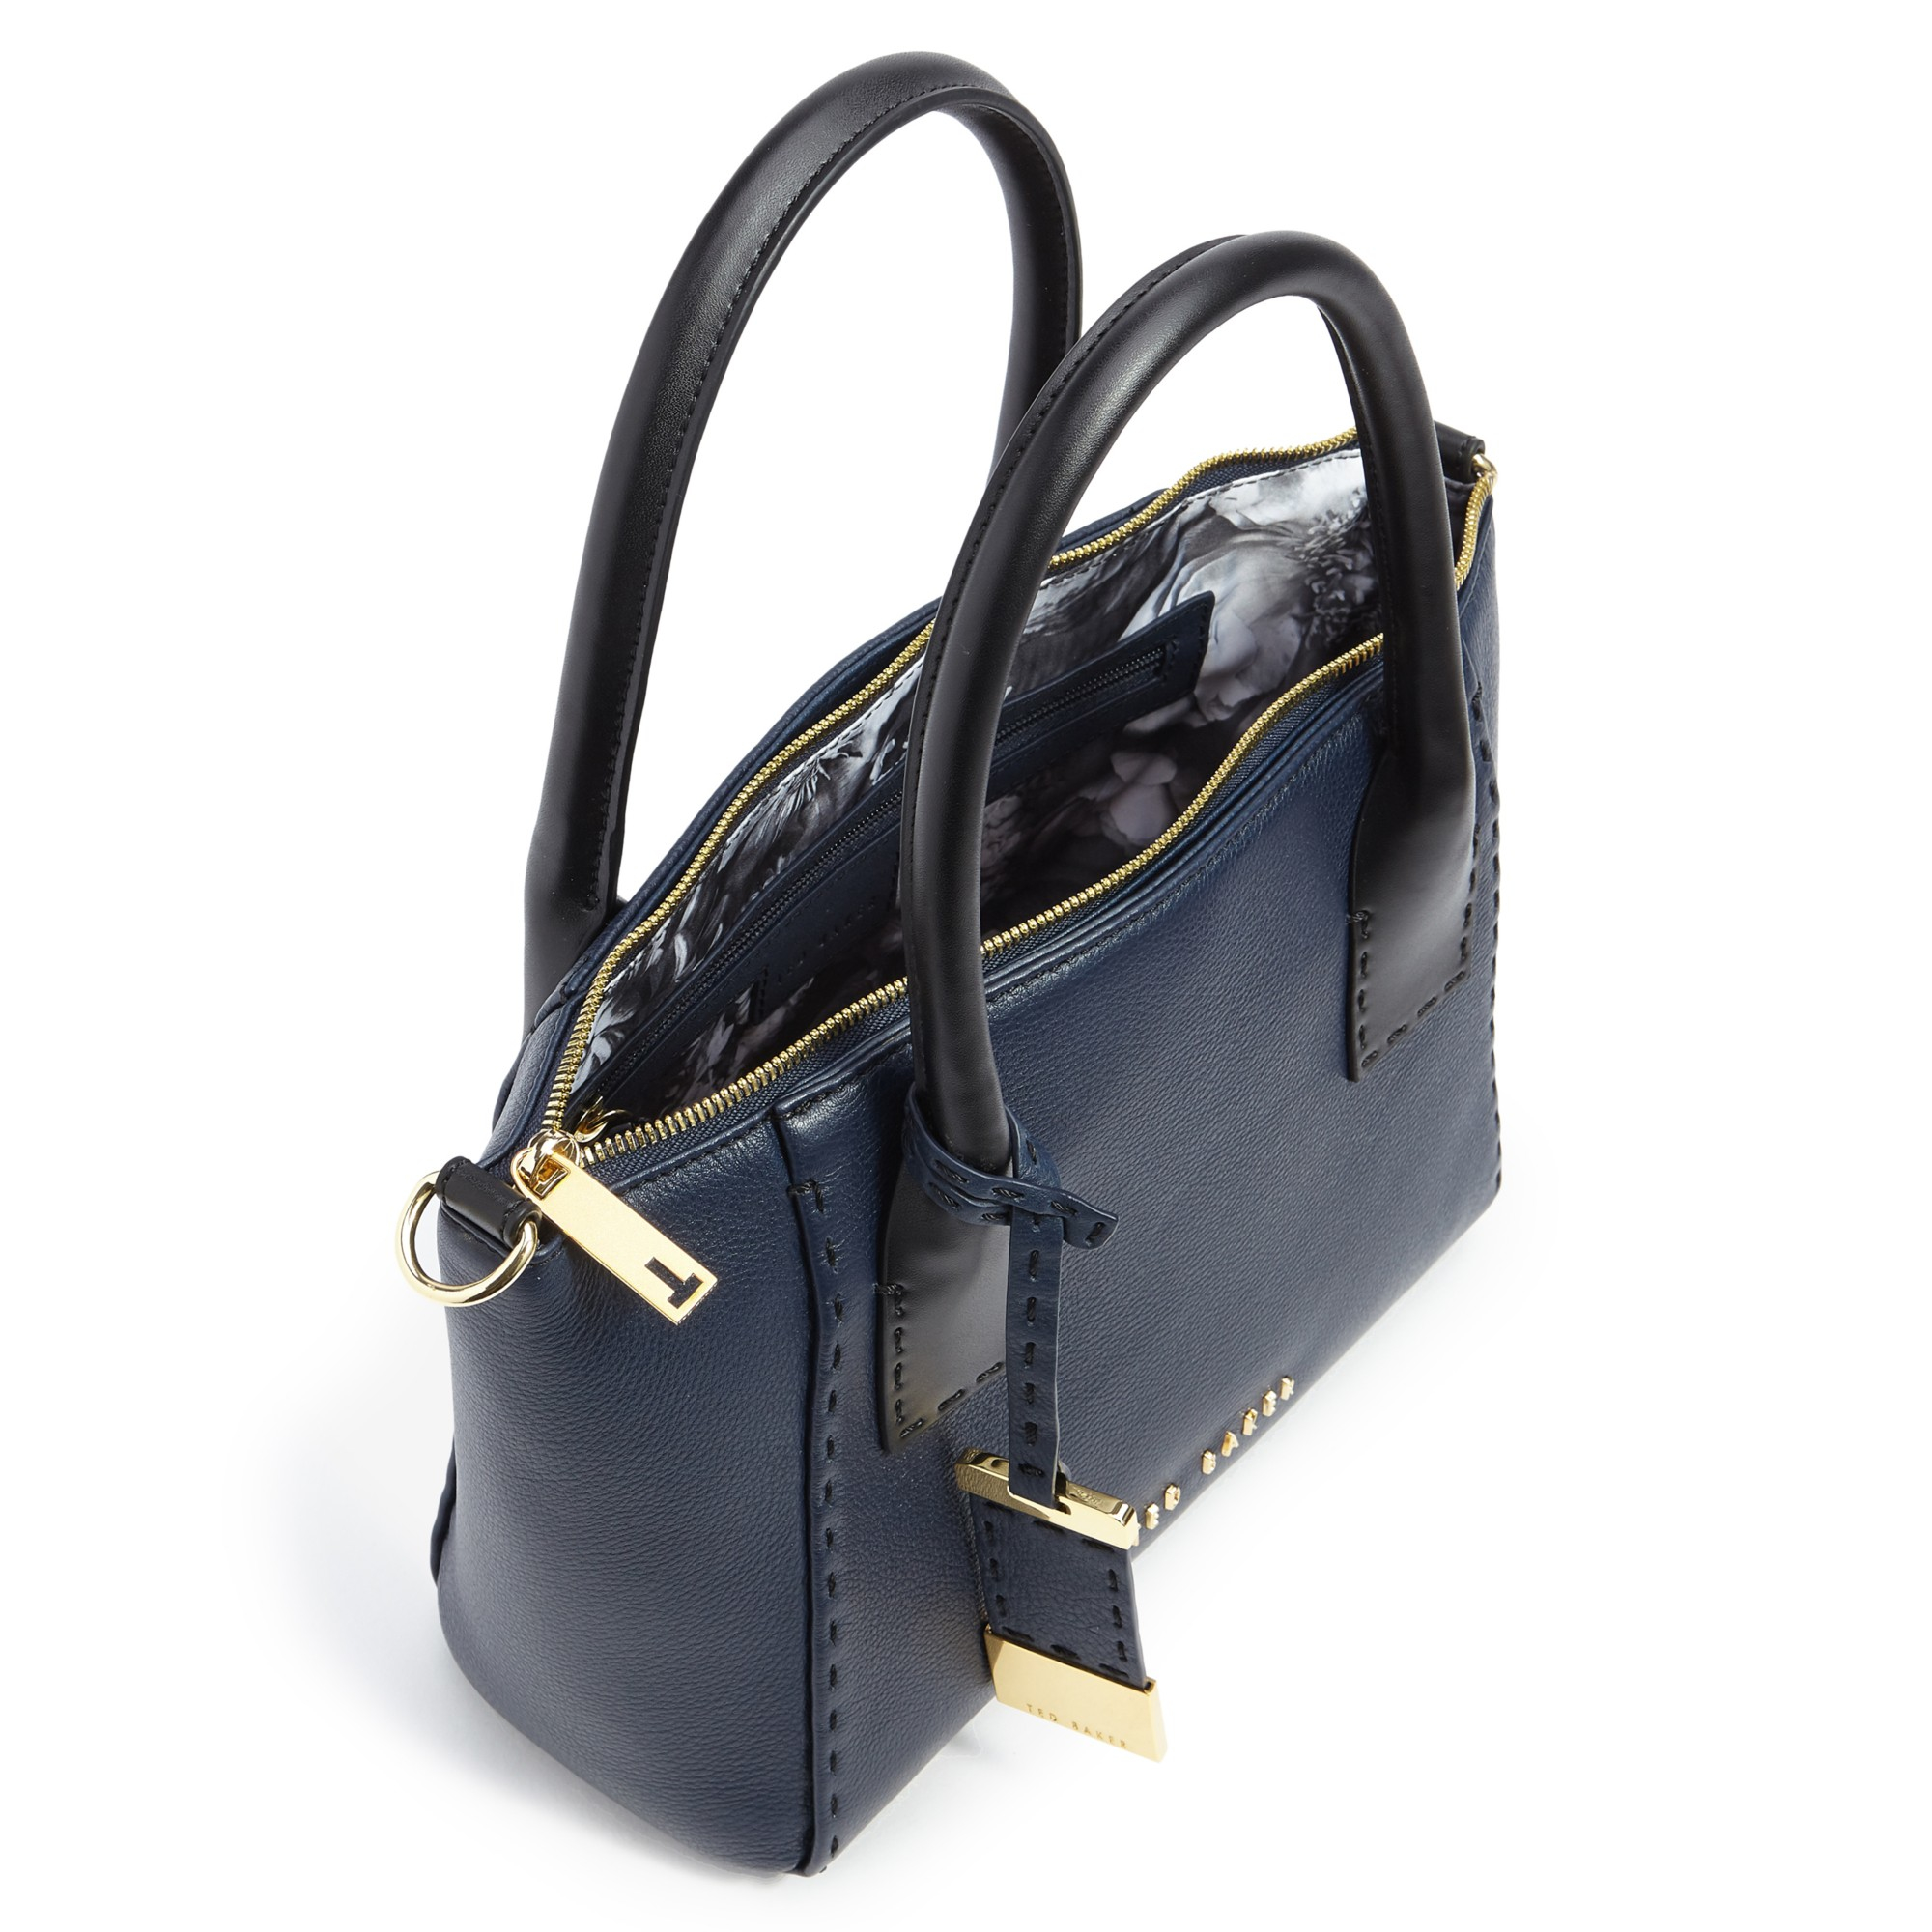 dddb21fa9f31 Ted Baker Lauren Small Leather Tote Bag in Blue - Lyst